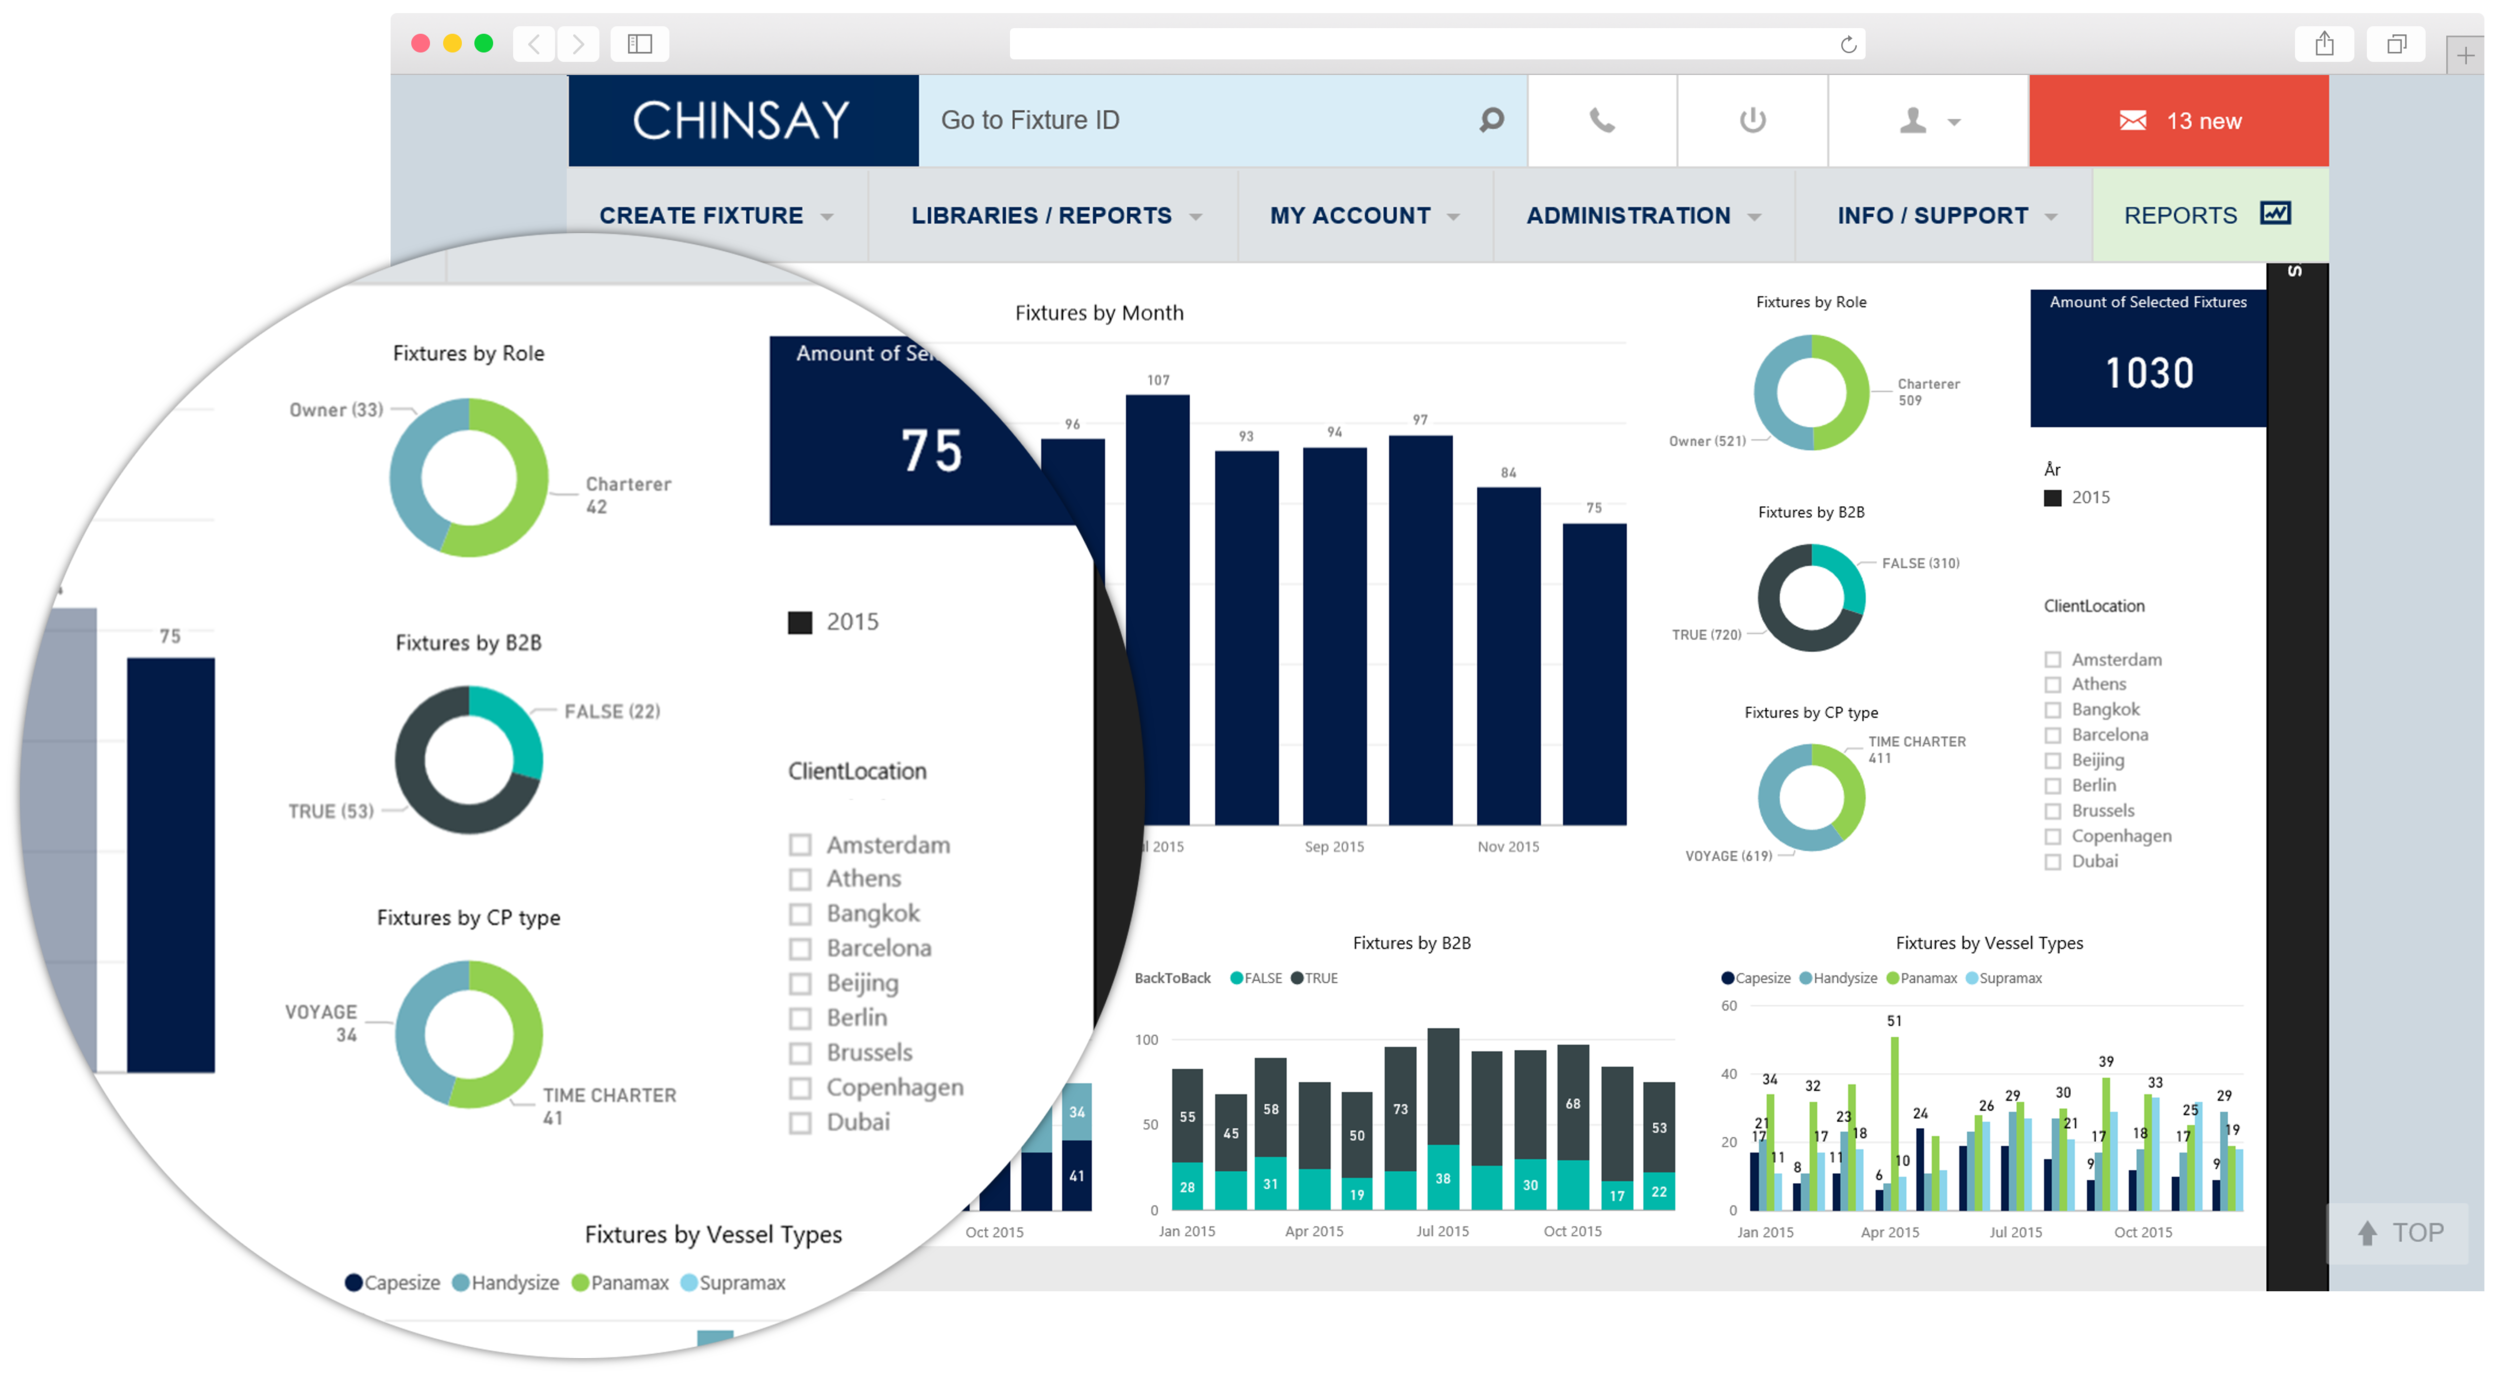 Chinsay's integrated, interactive dashboard, enable users and companies to learn from their fixture and process data